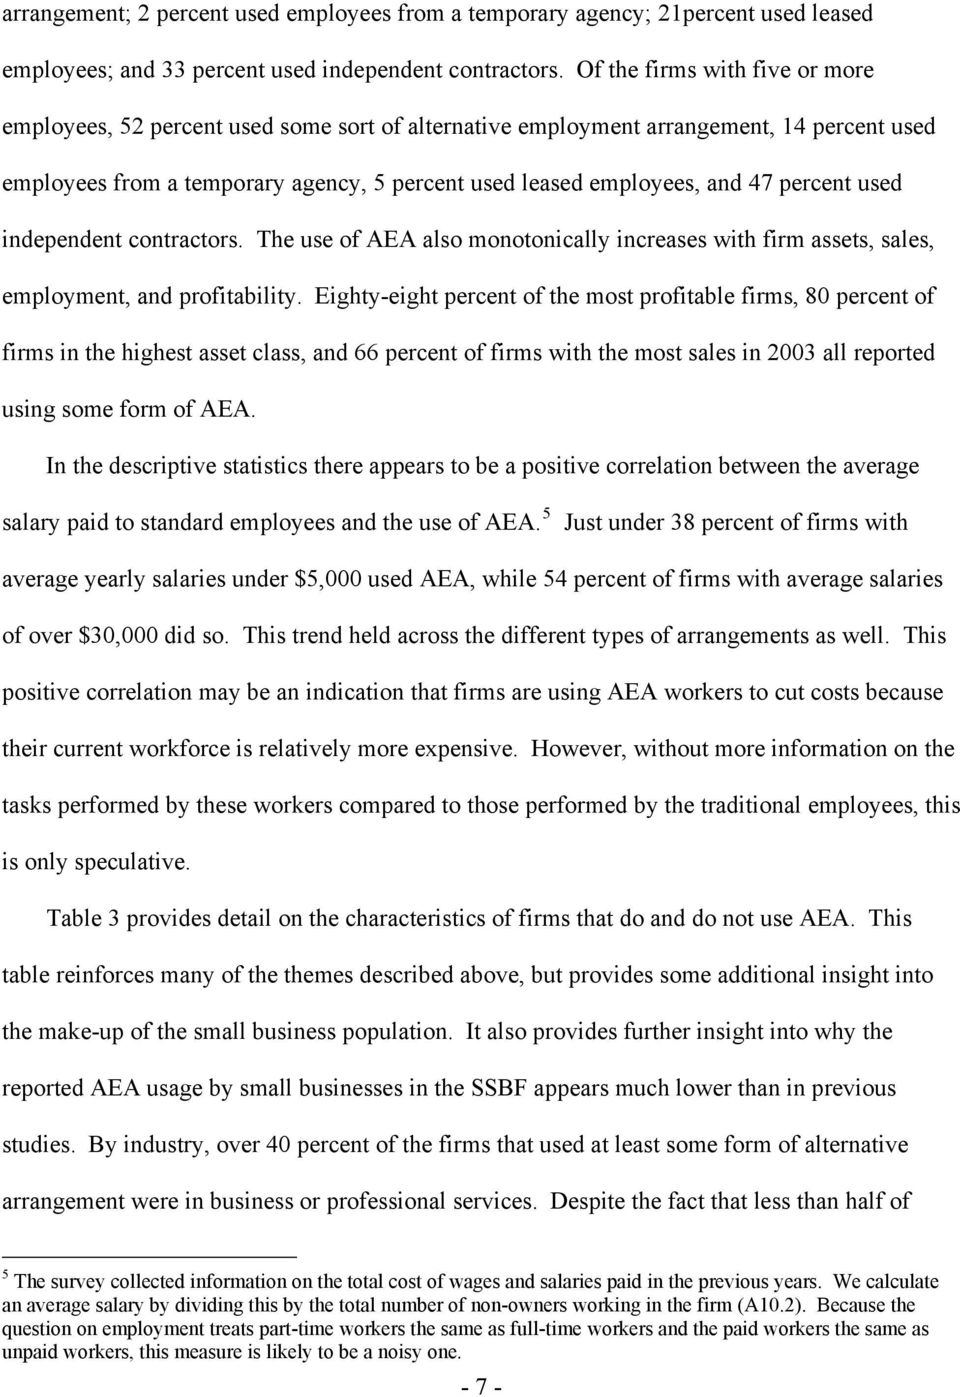 The use of AEA also monotonically increases with firm assets, sales, employment, and profitability.